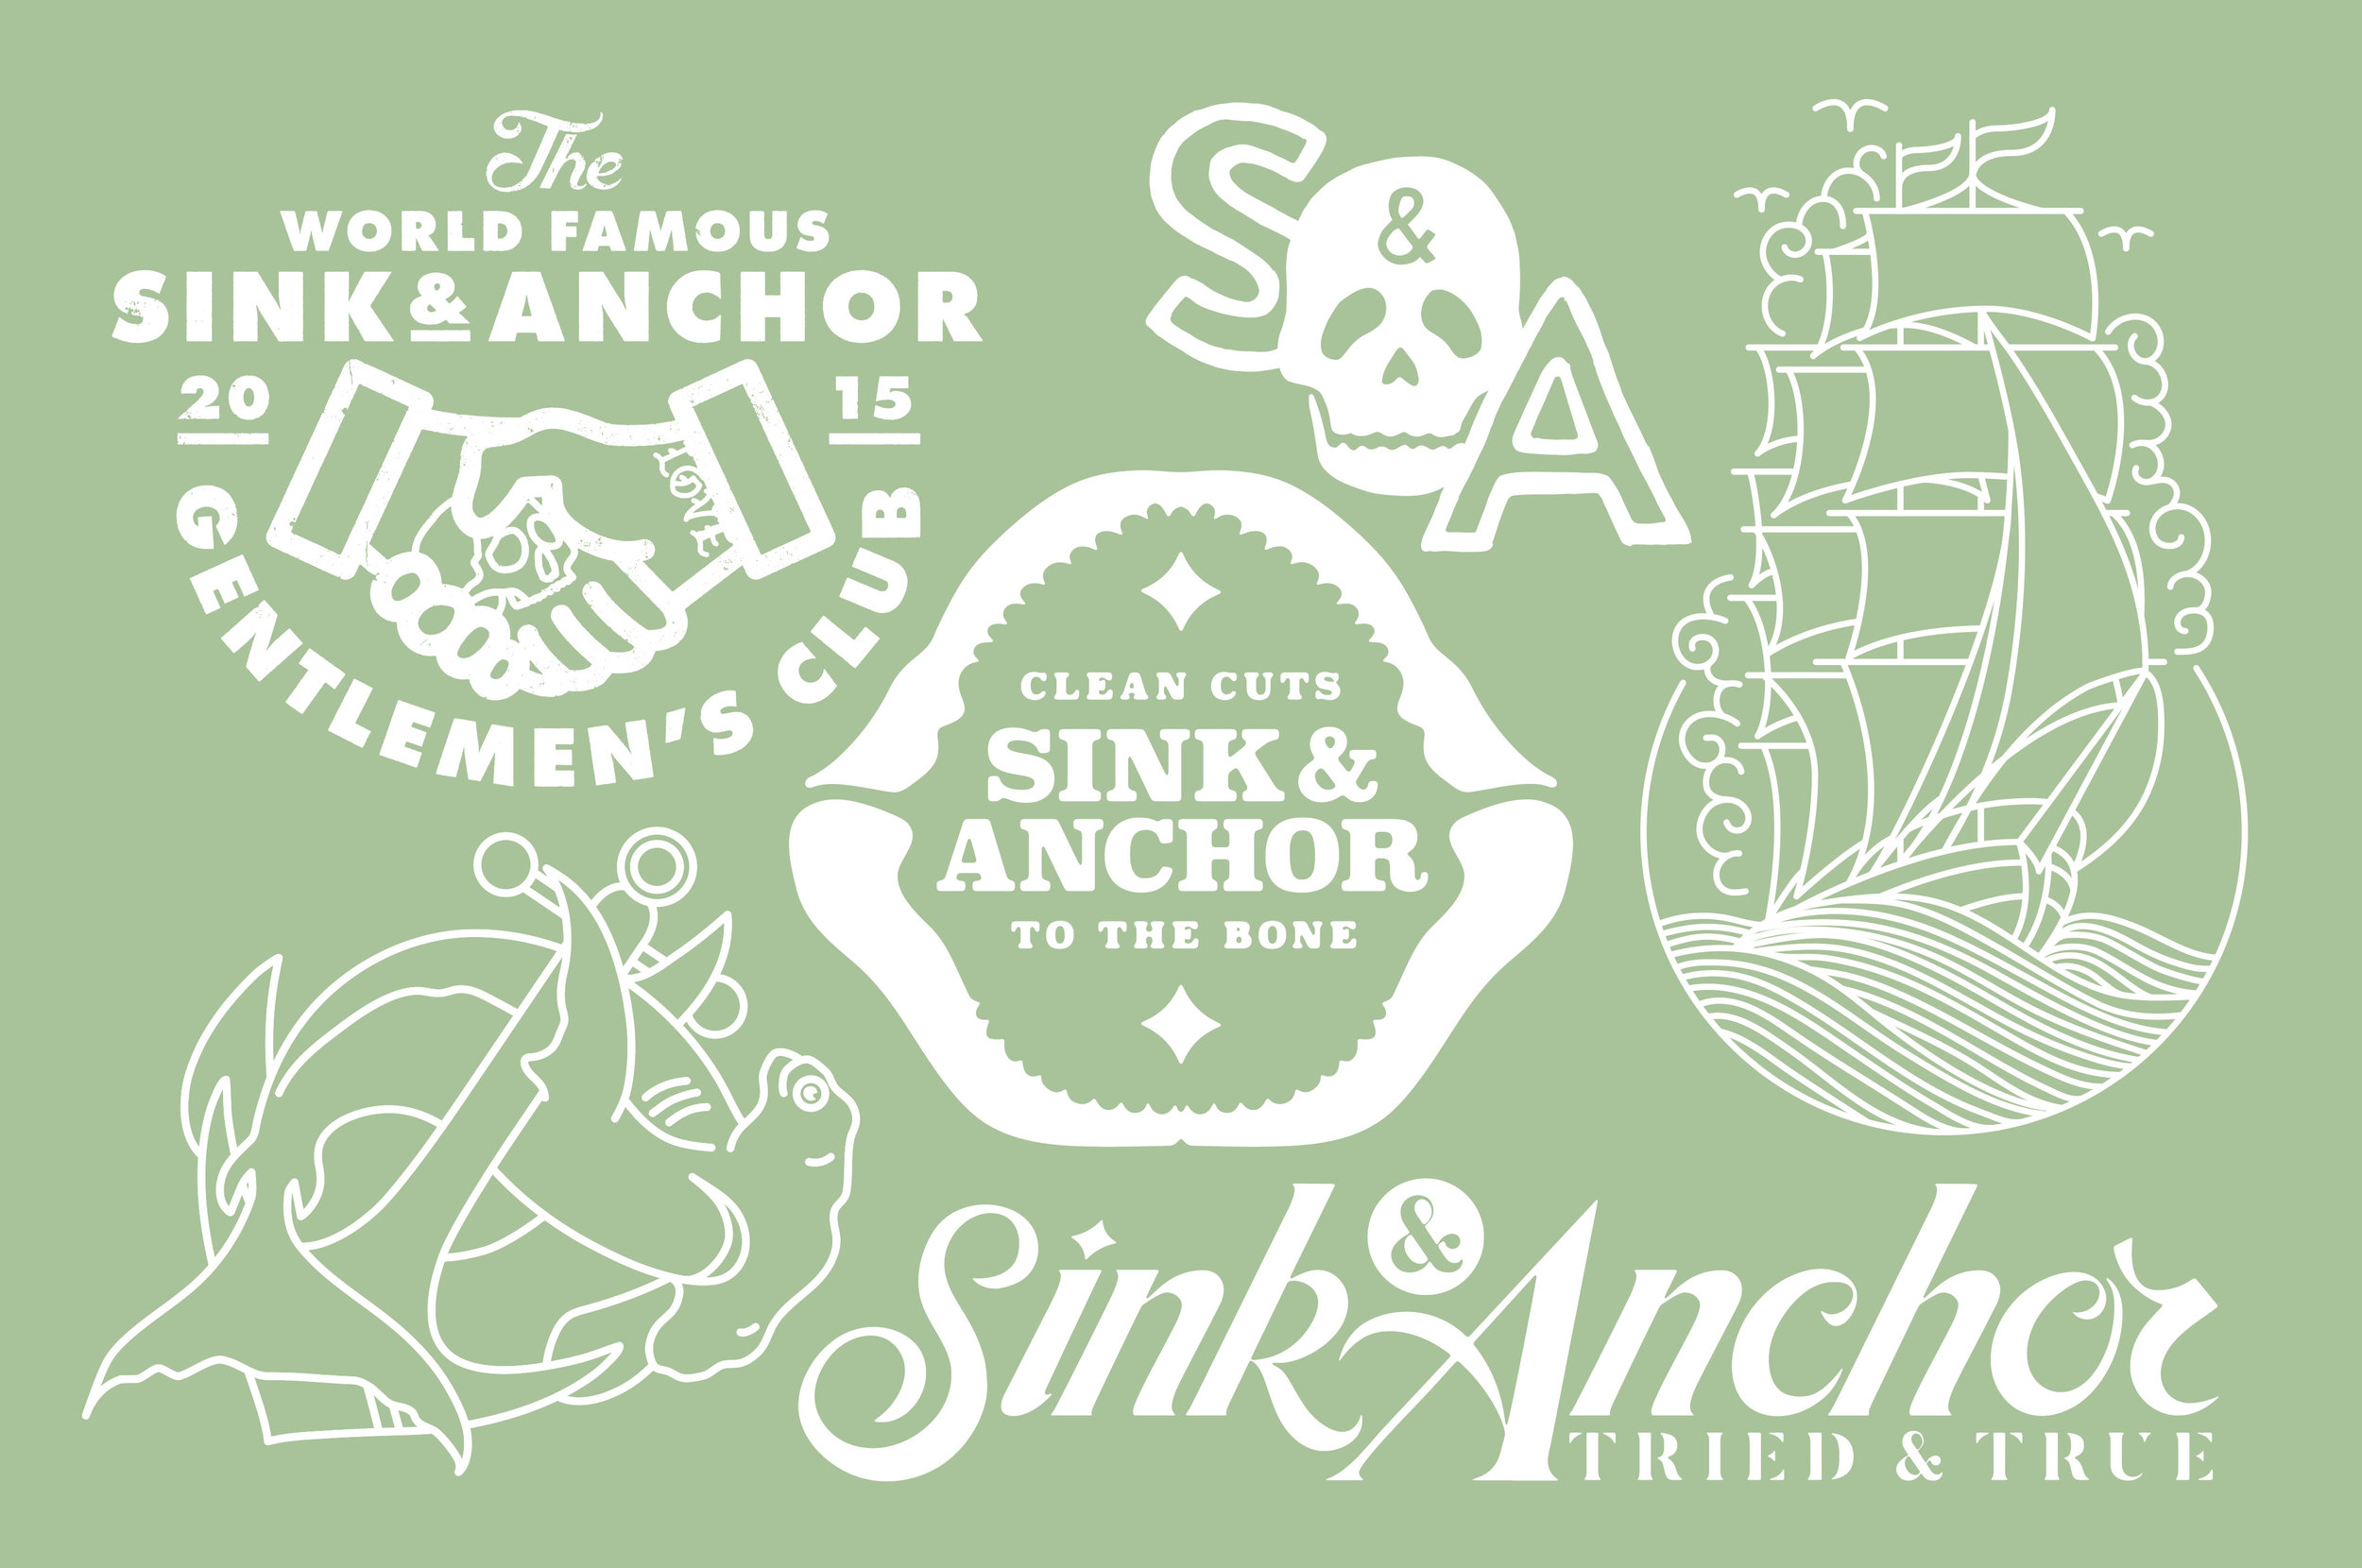 Tyrone-Stoddart_Sink-&-Anchor_03.jpg